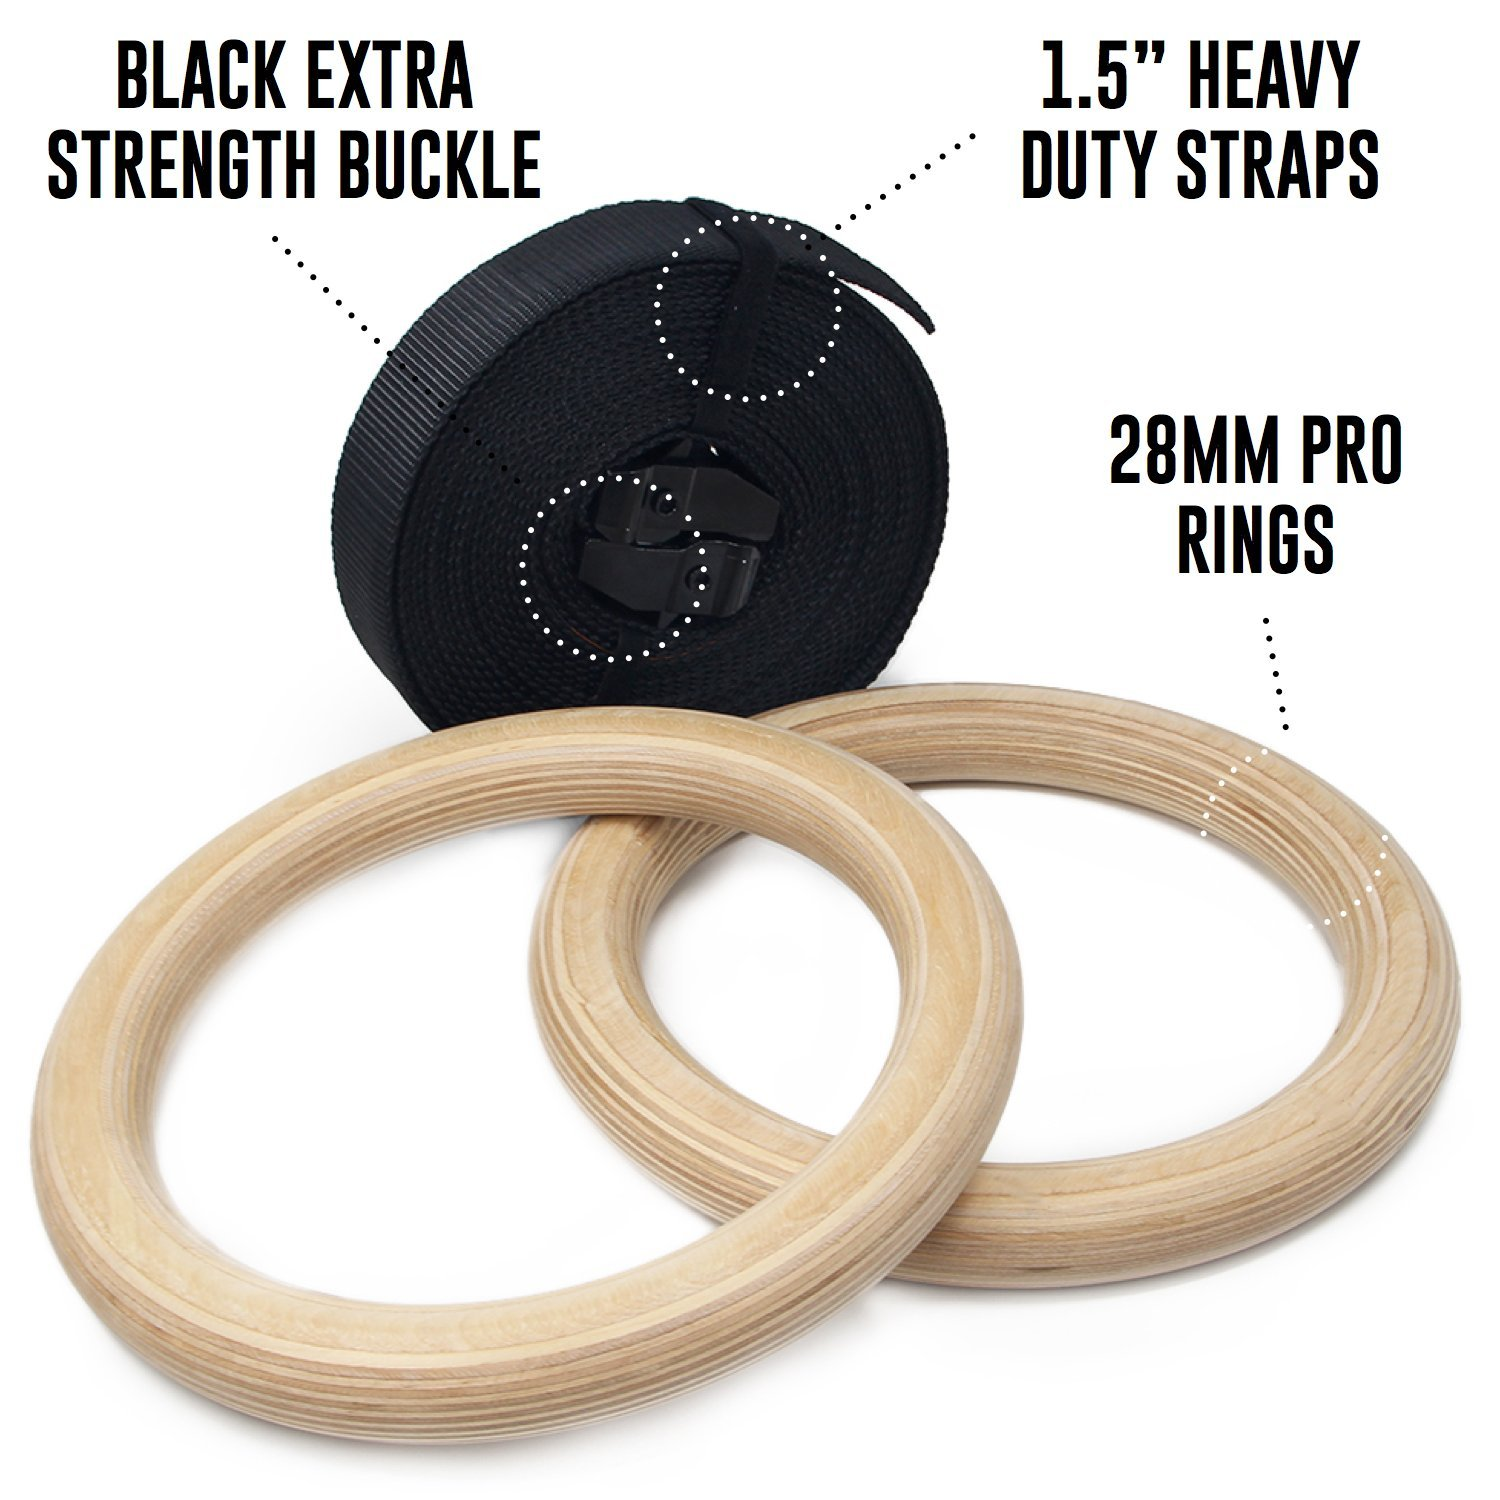 Intense Physical Training Equipment Emerge Wooden Olympic Gymnastics Rings Bodyweight Home Gym Training Set with Adjustable Straps for Core Strength Exercises Athletes Fitness Gear for A A